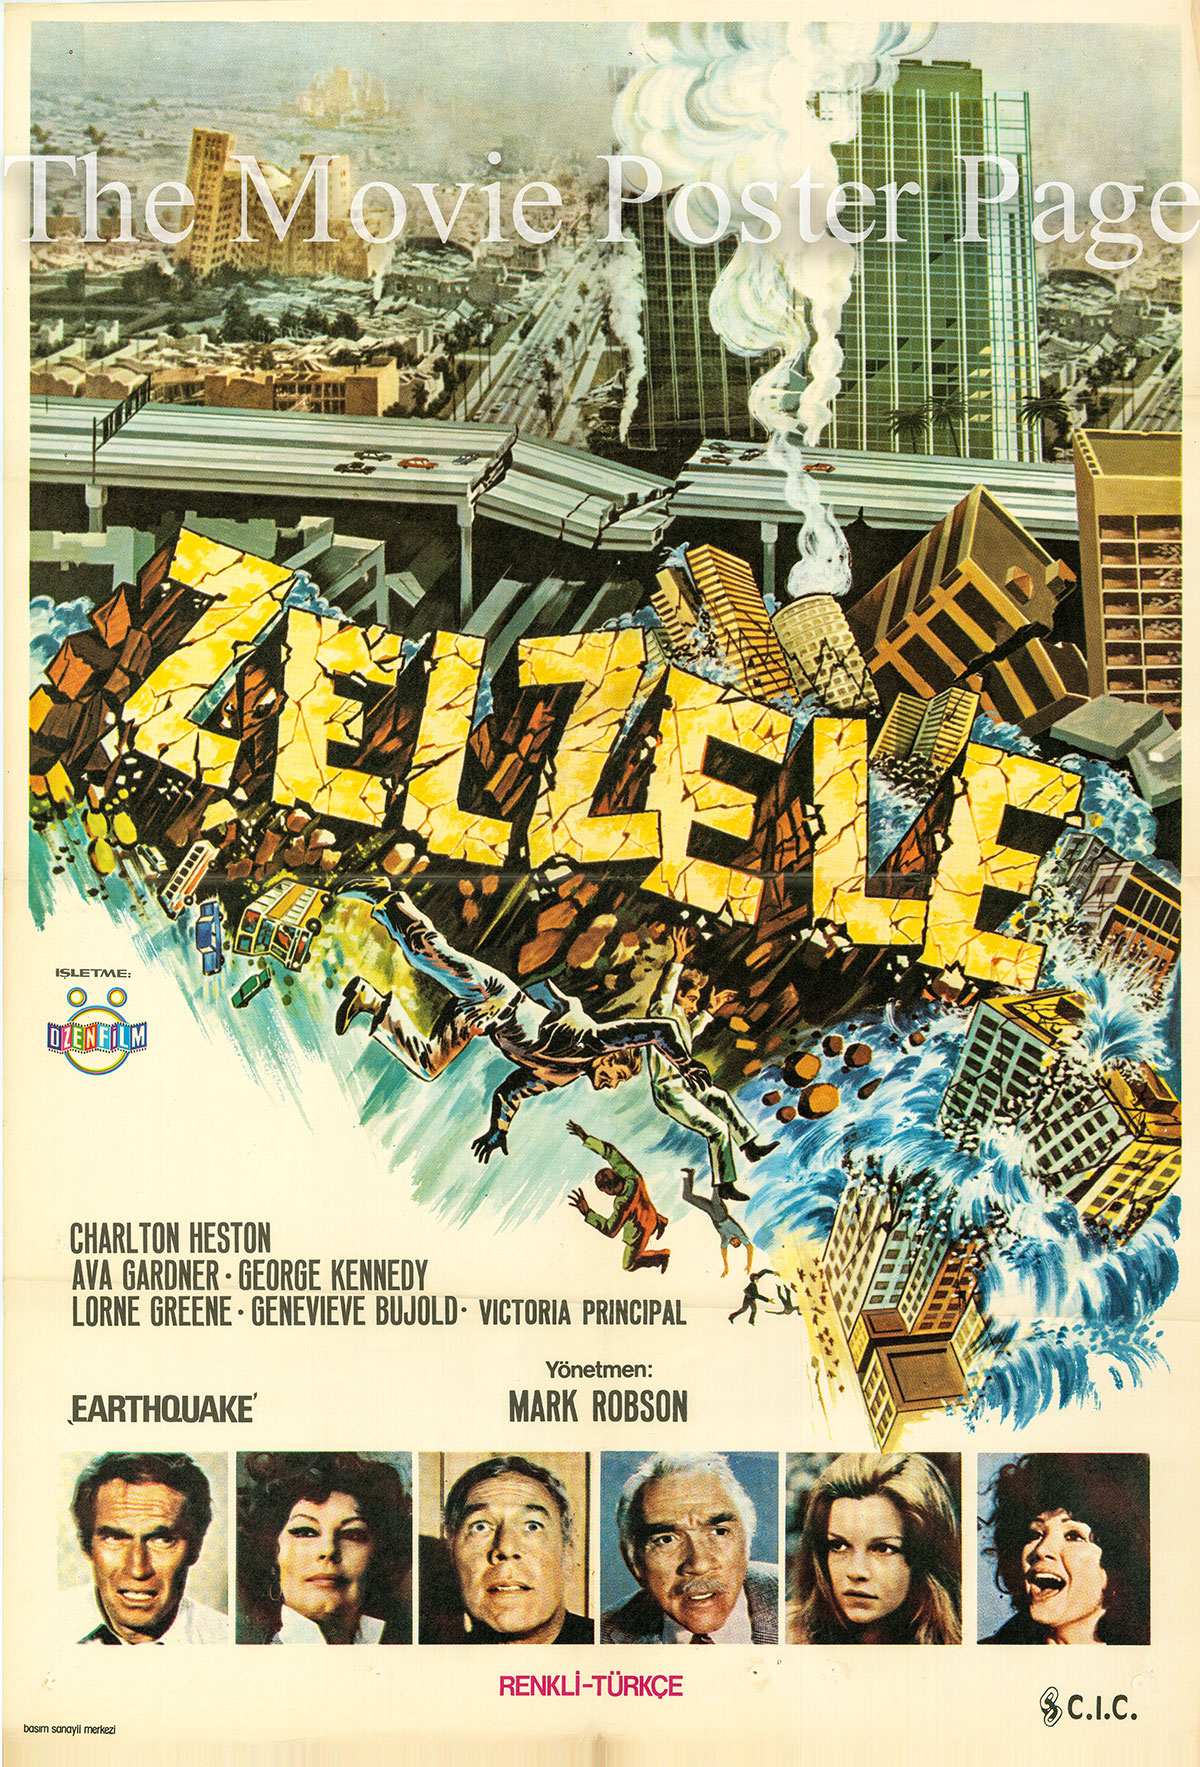 Pictured is a Turkish one-sheet poster forthe 1974 Mark Robson film Earthquake starring Charlton Heston as Stewart Graff.